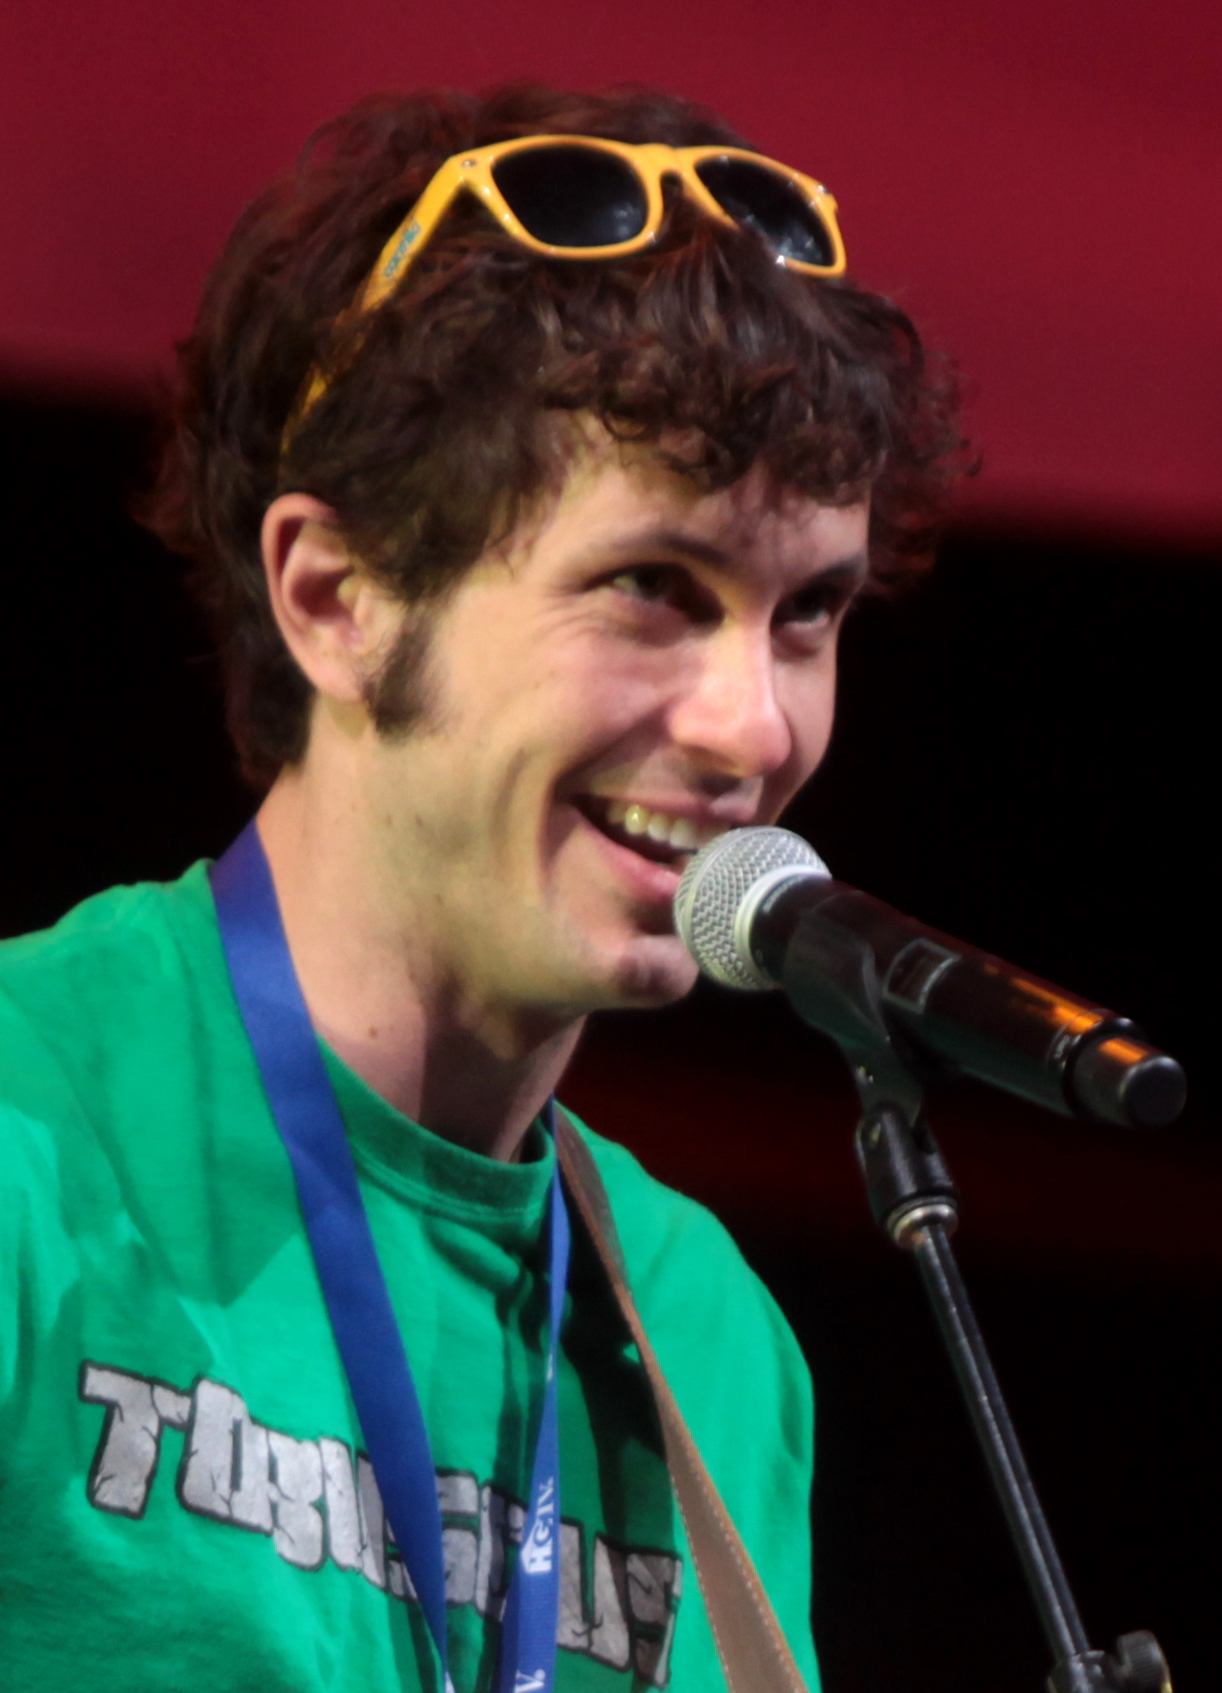 The 33-year old son of father (?) and mother(?) Toby Turner in 2018 photo. Toby Turner earned a  million dollar salary - leaving the net worth at 2 million in 2018